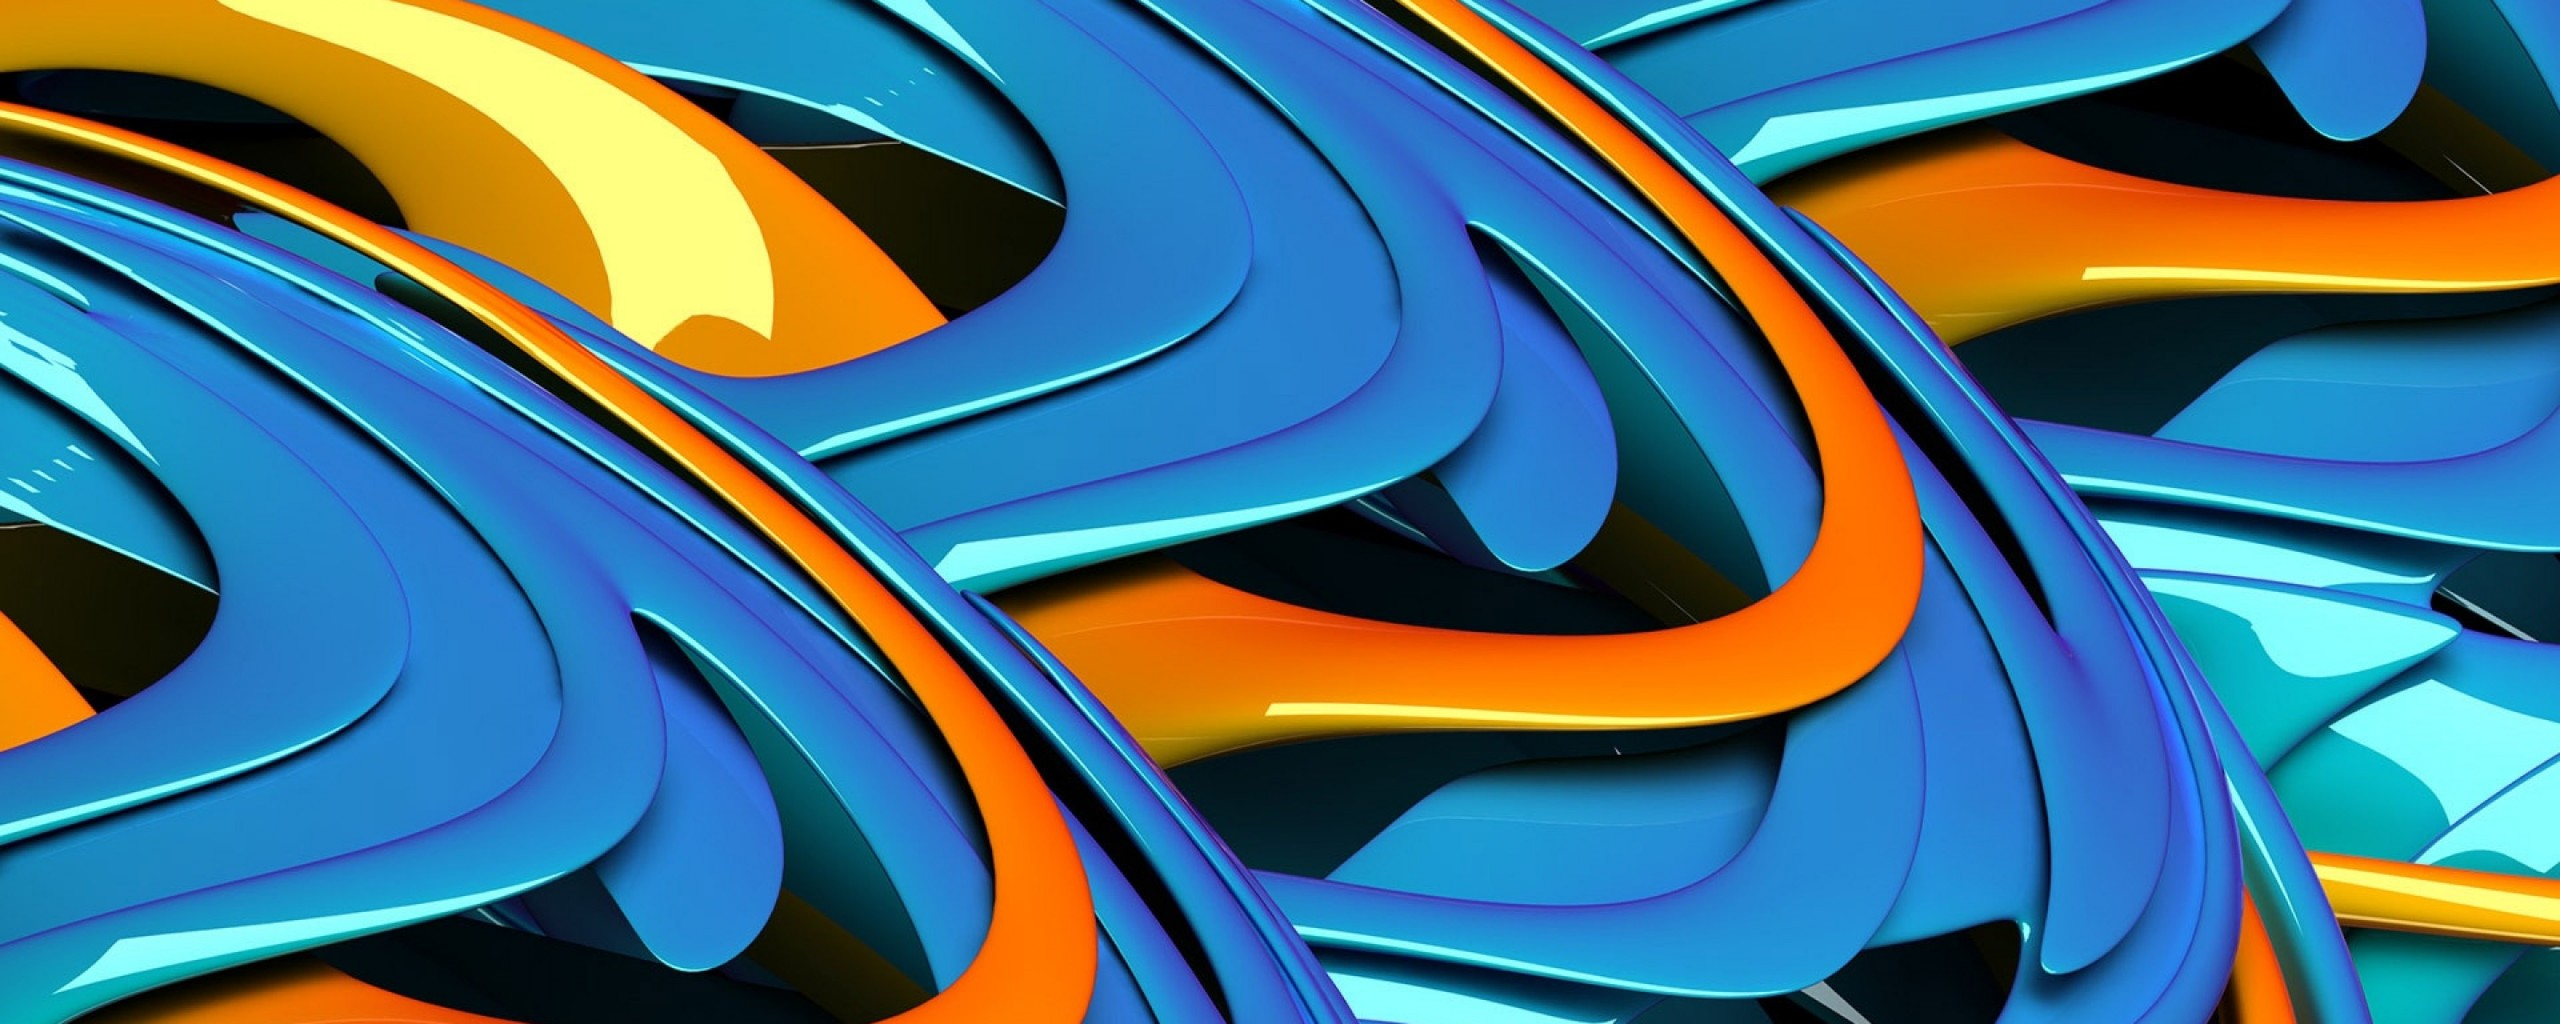 Ps Vita 3d Blue Abstract Wallpaper Wallpaper